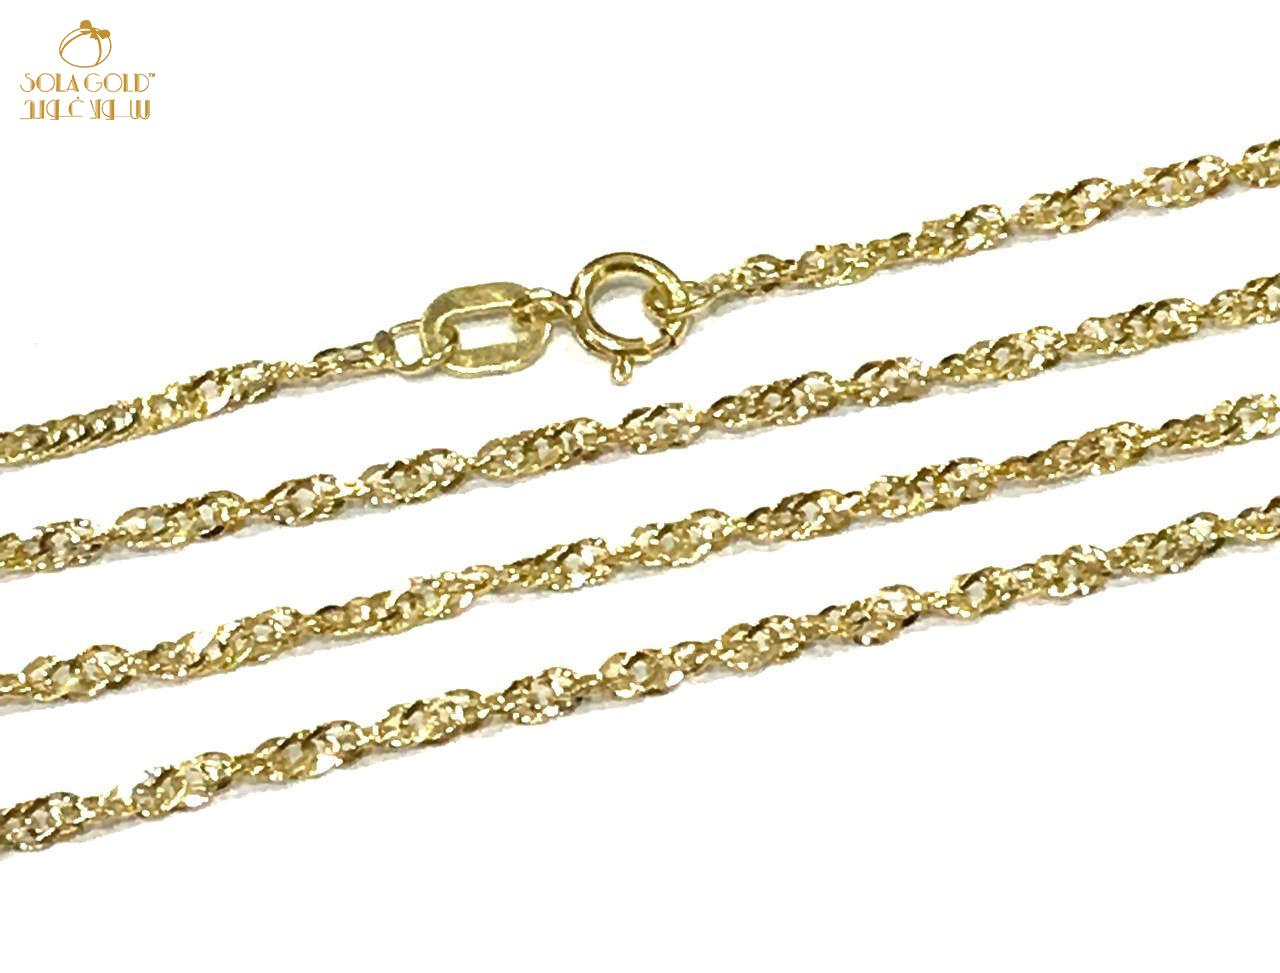 REAL GOLD CHAIN 18K